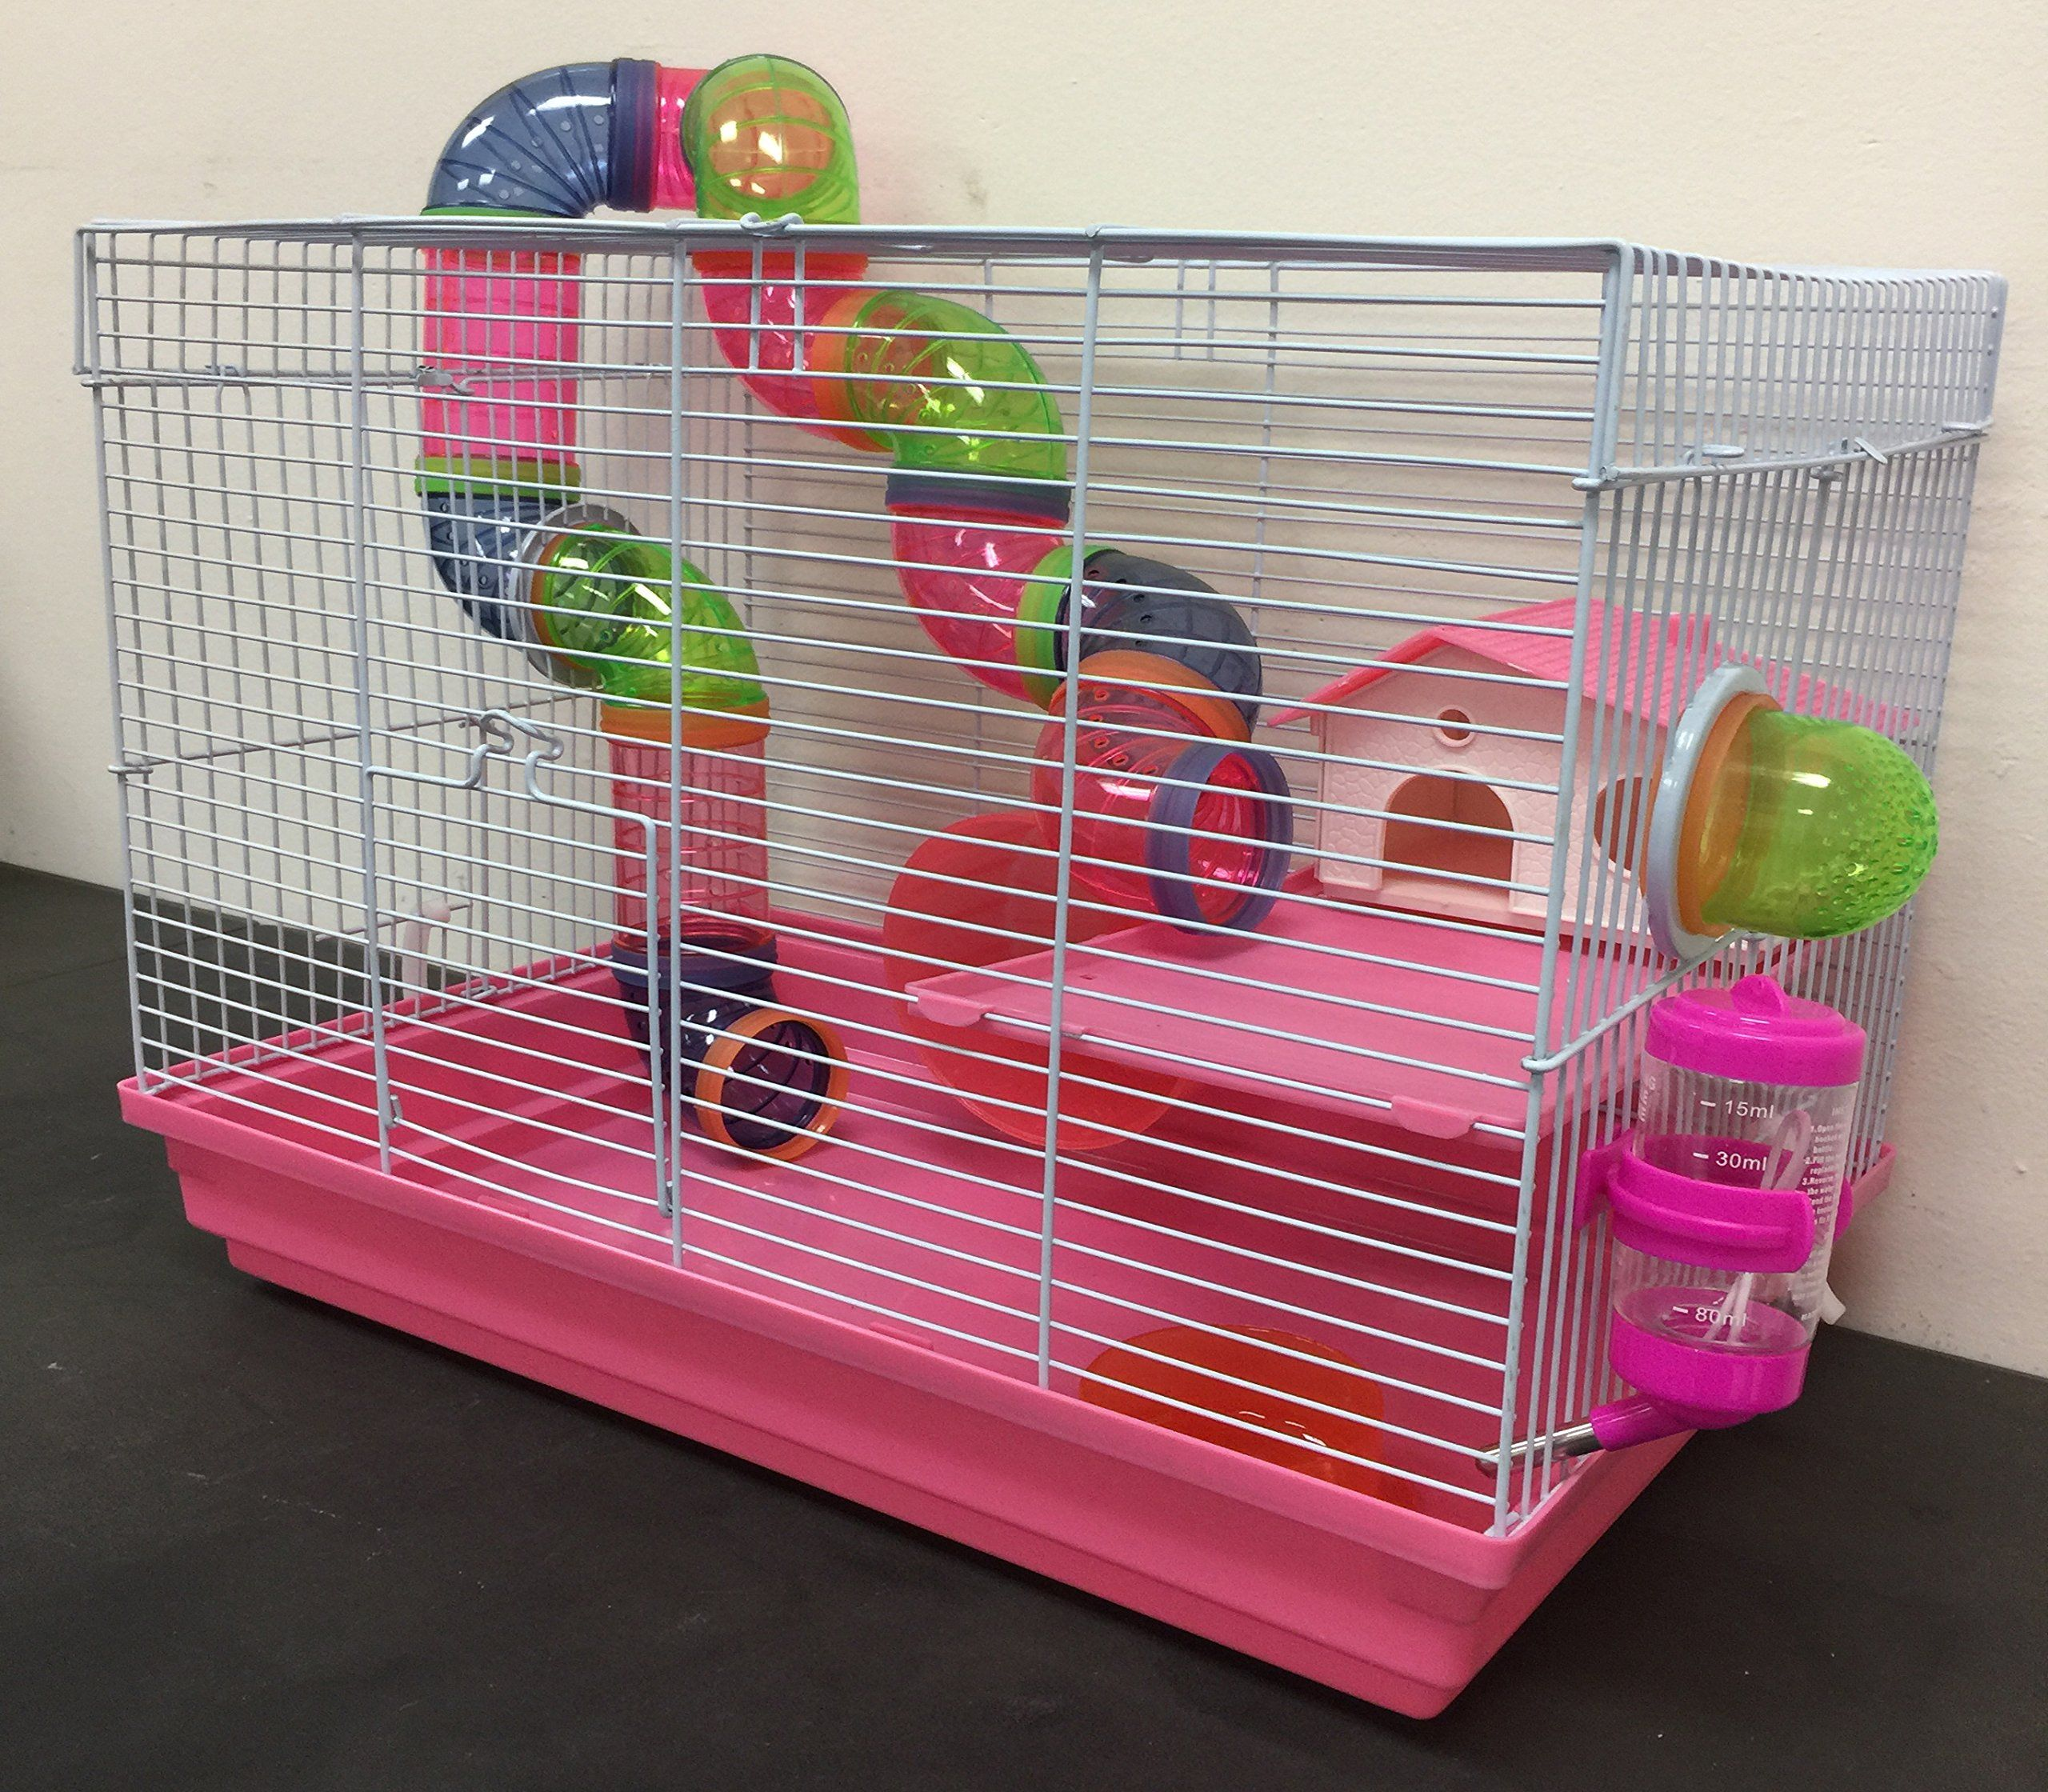 Pink 2 Floor Syrian Hamster Habitat Rodent Gerbil Mouse Mice Rats Animal Cage Need To Know More Click The Pict Small Animal Cage Hamster Habitat Small Pets